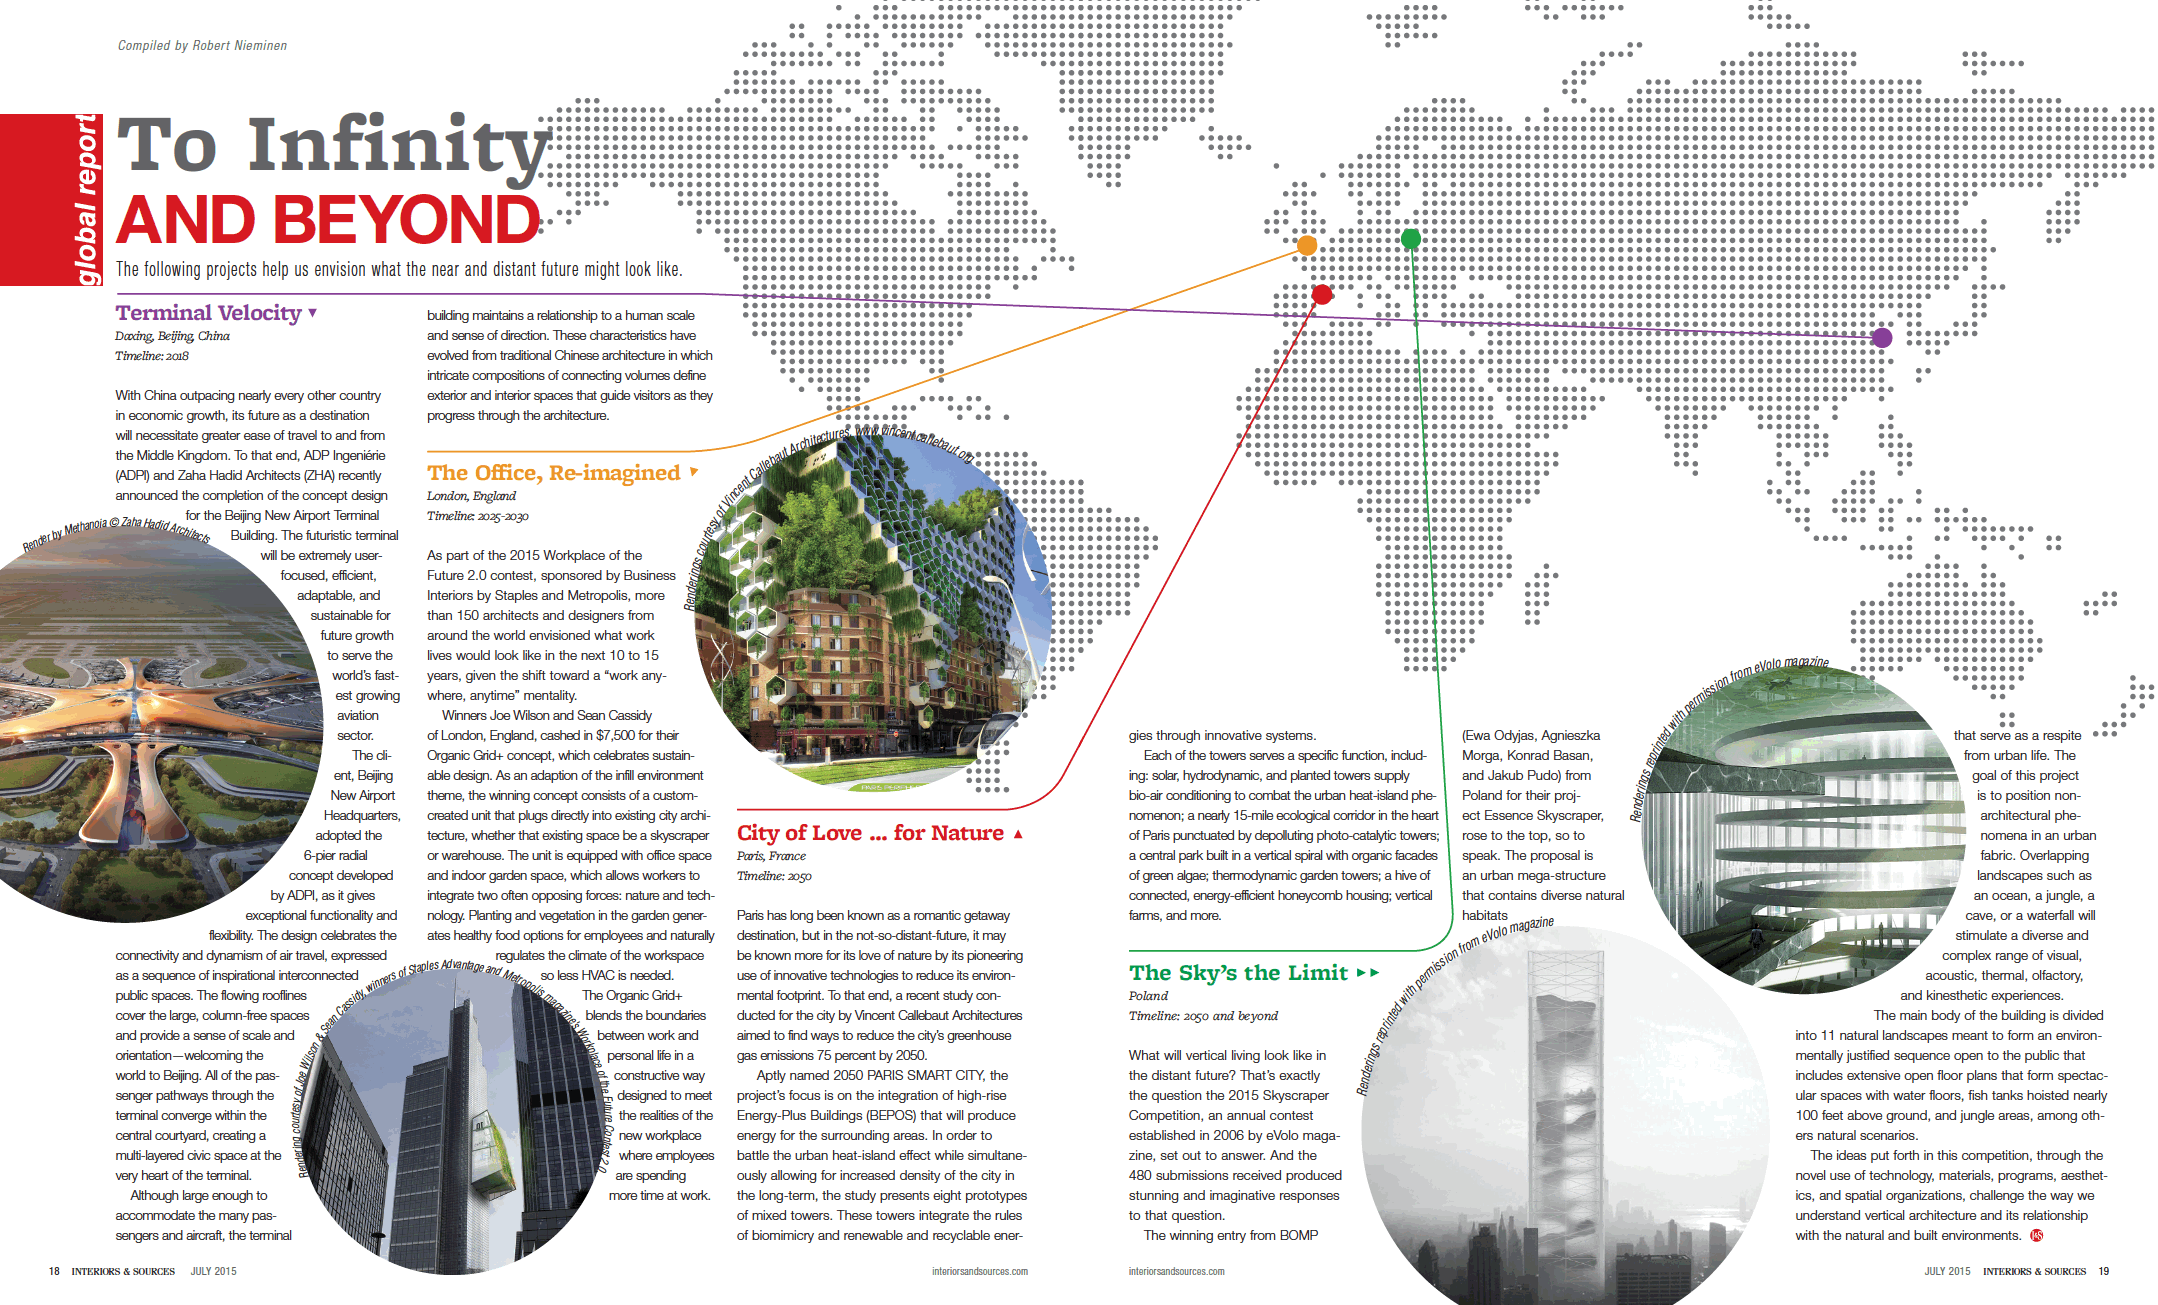 Defining Moment For Fledgling Neocon >> Interiors And Sources July 2015 To Infinity And Beyond